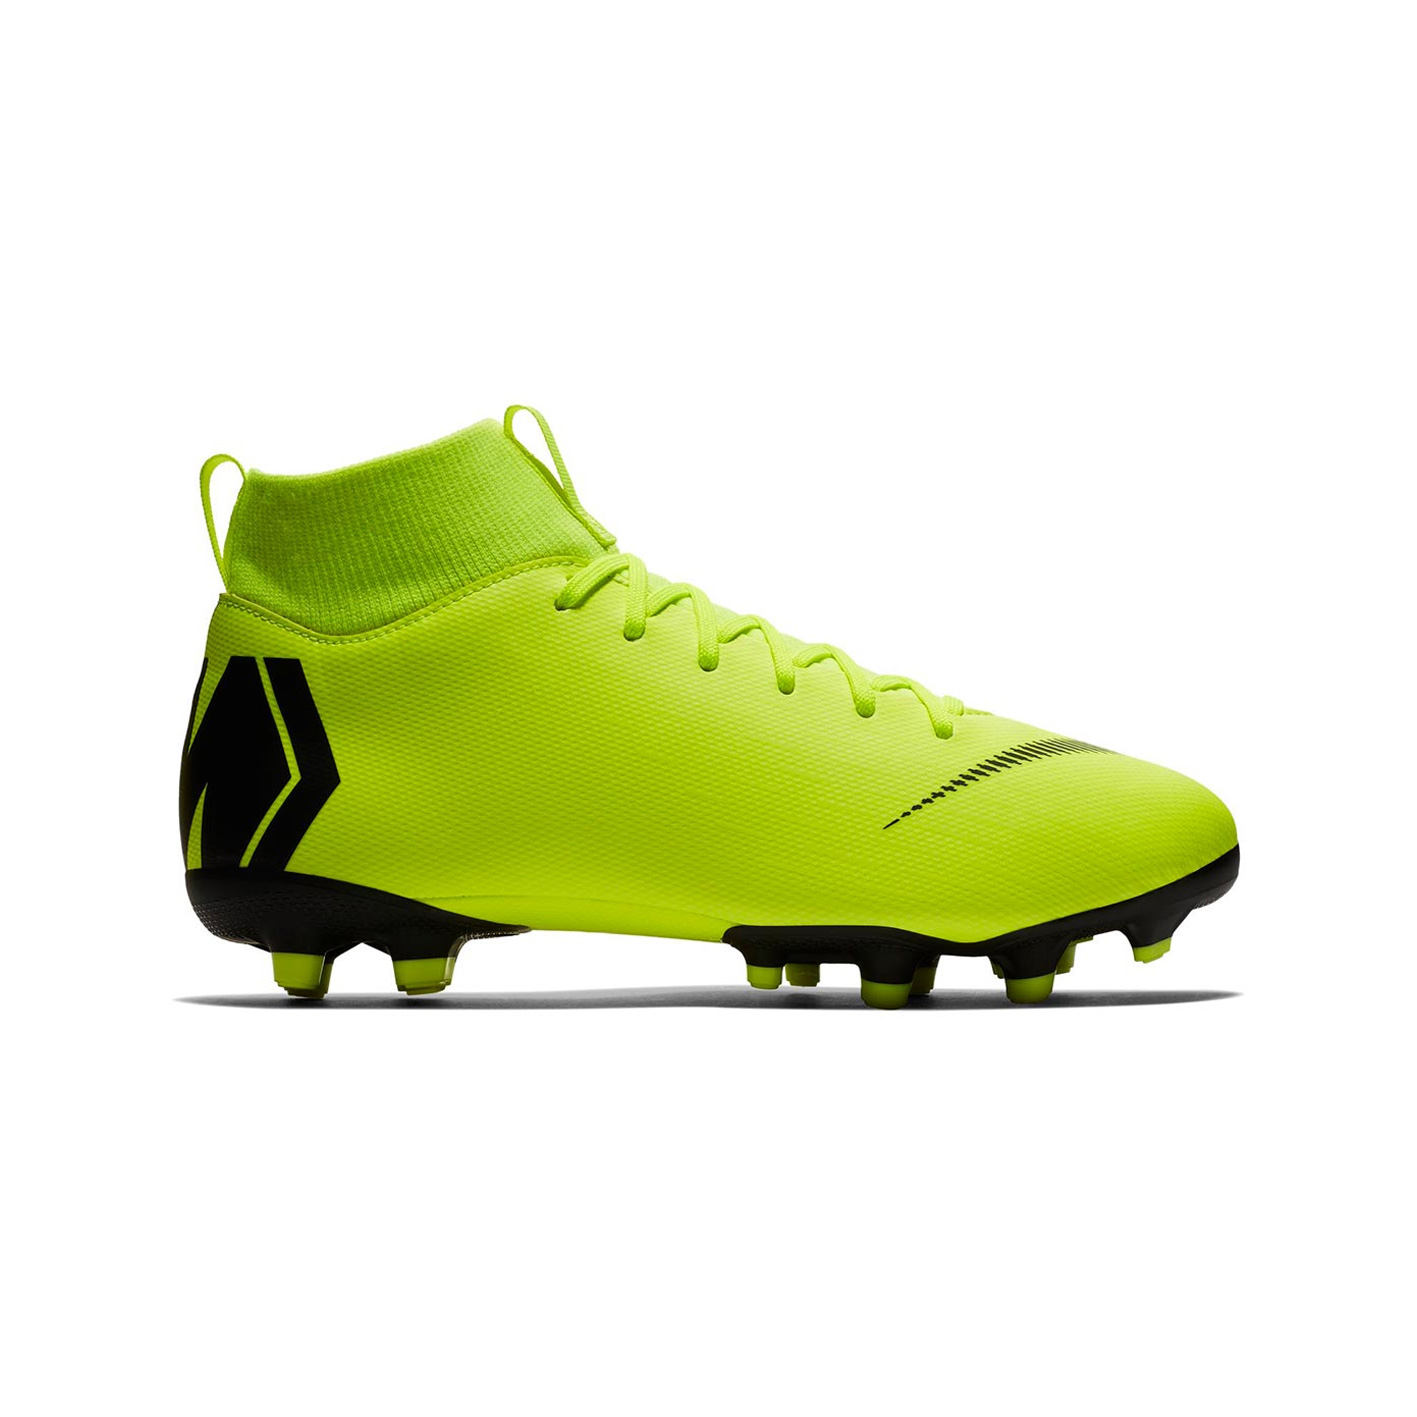 803c04ad0c32 Nike Junior Superfly 6 Academy GS Multi-Ground Football Boot- Volt ...